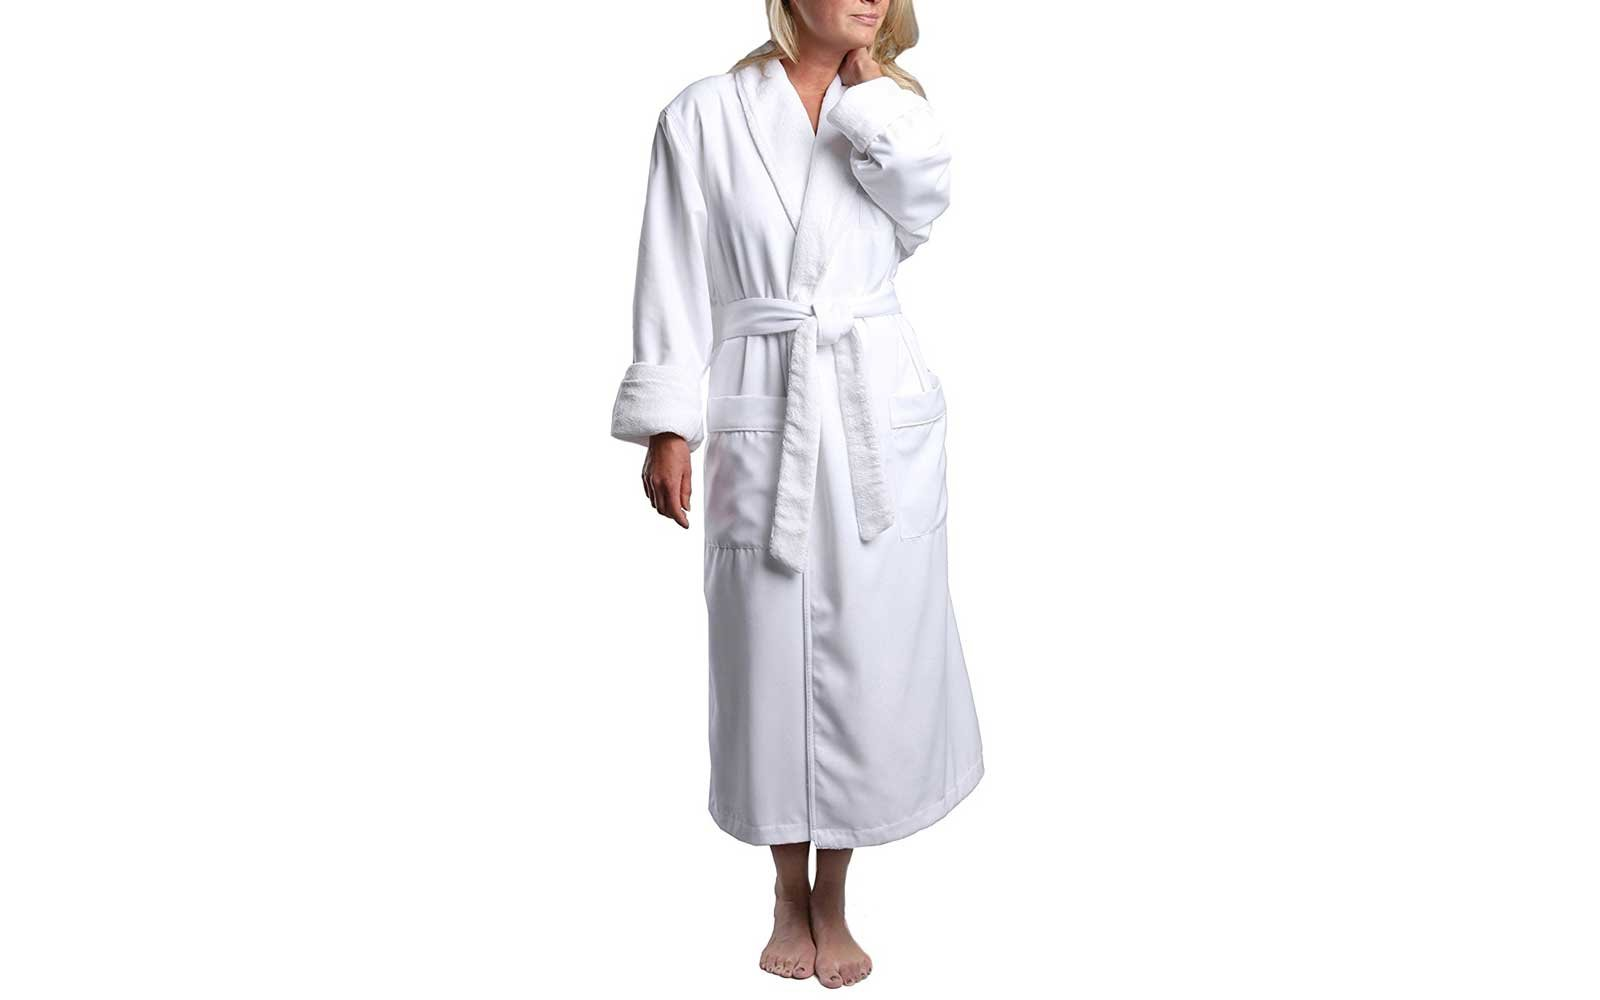 Cute Robes For College